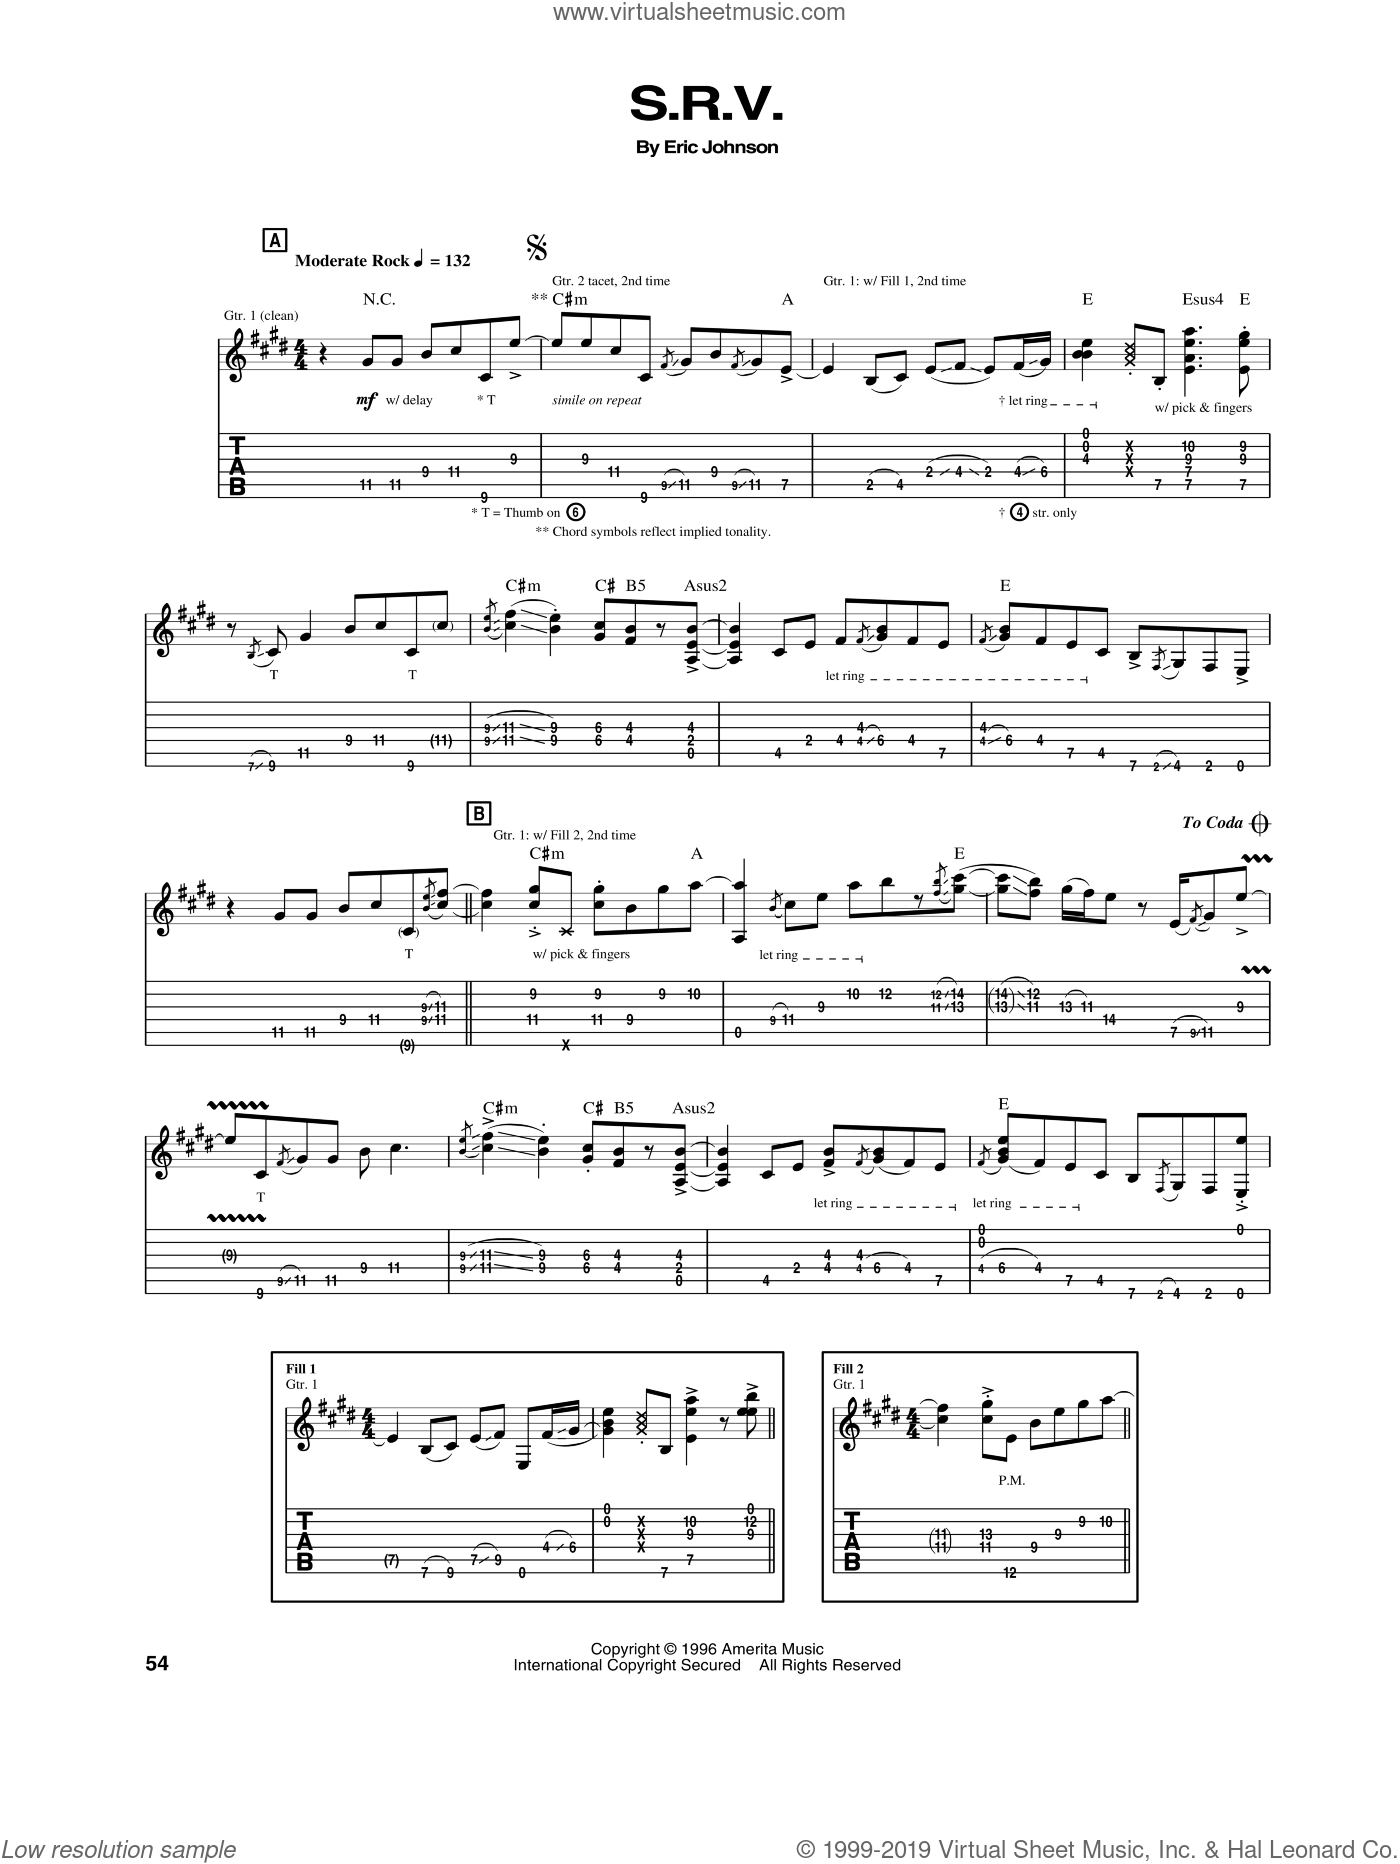 S.R.V. sheet music for guitar (tablature) by Eric Johnson, intermediate skill level